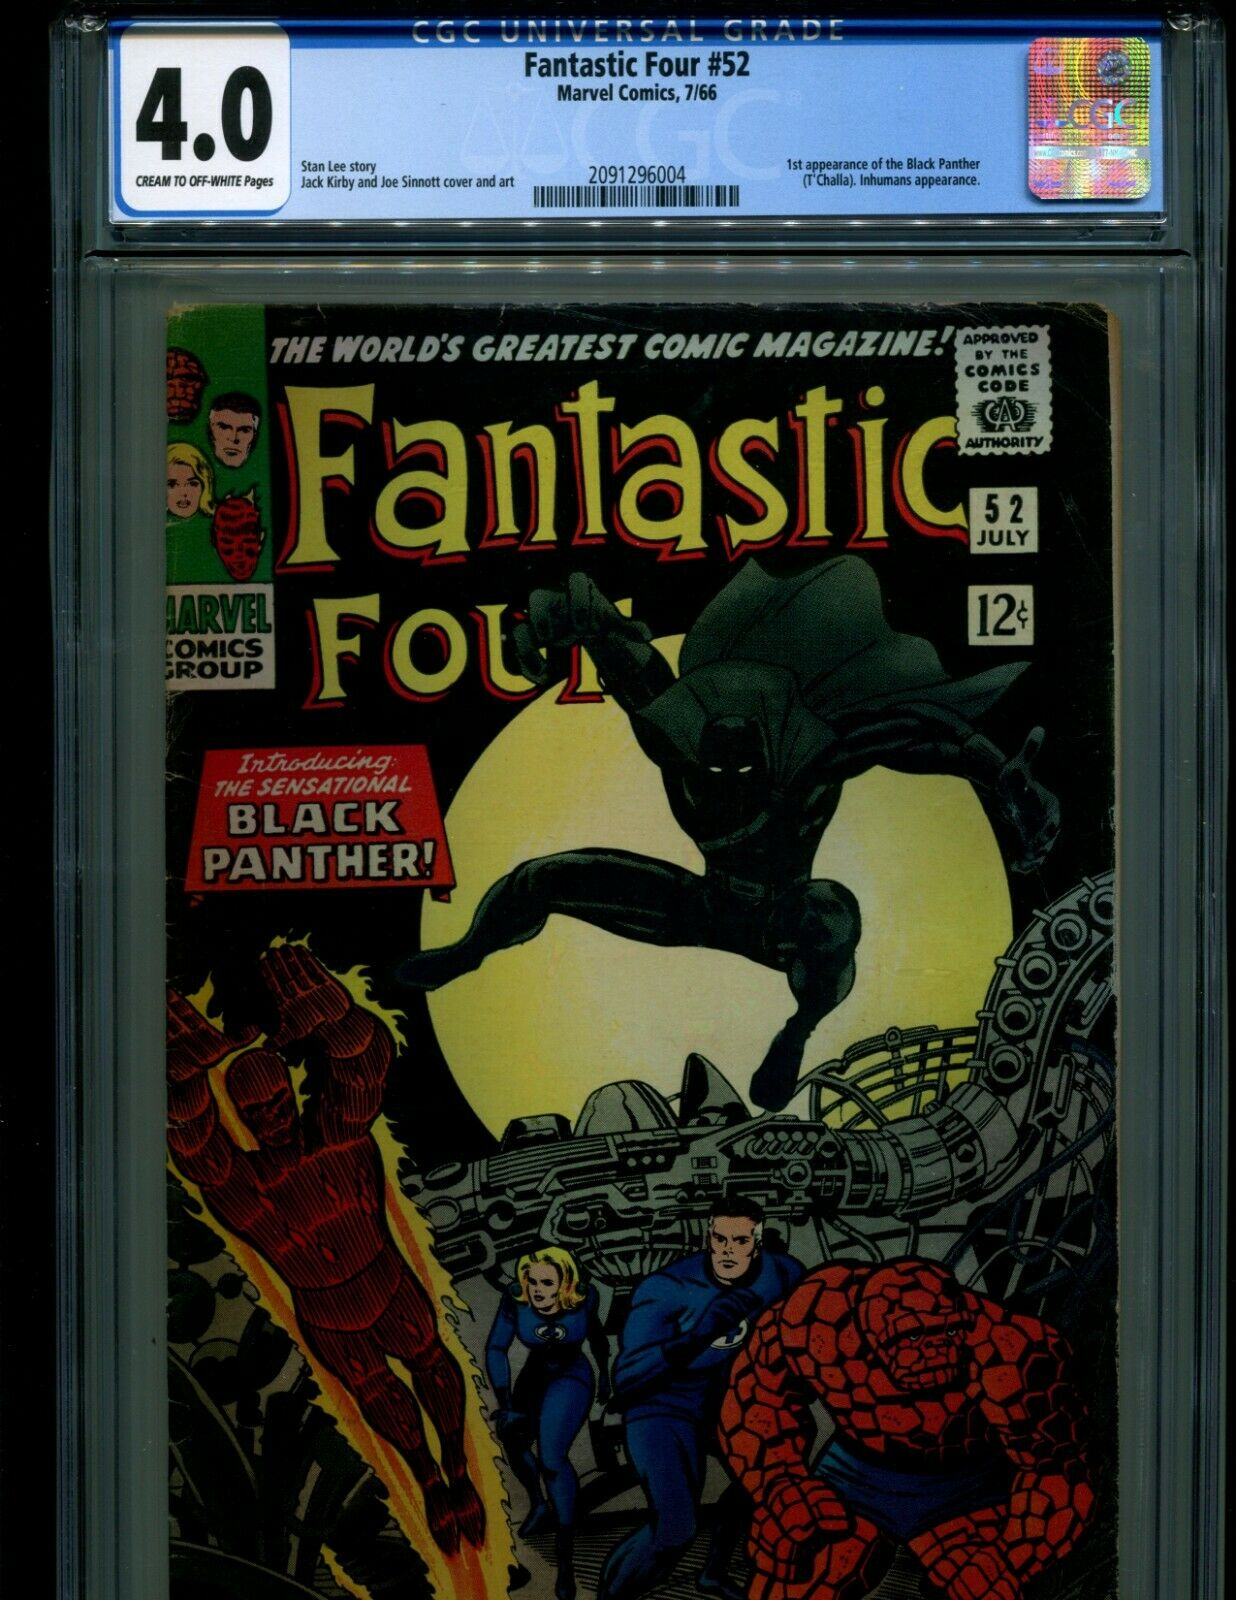 FANTASTIC FOUR 52 CGC 4.0 VOL. 1 1ST APPEARANCE OF BLACK PANTHER MOVIE COMING